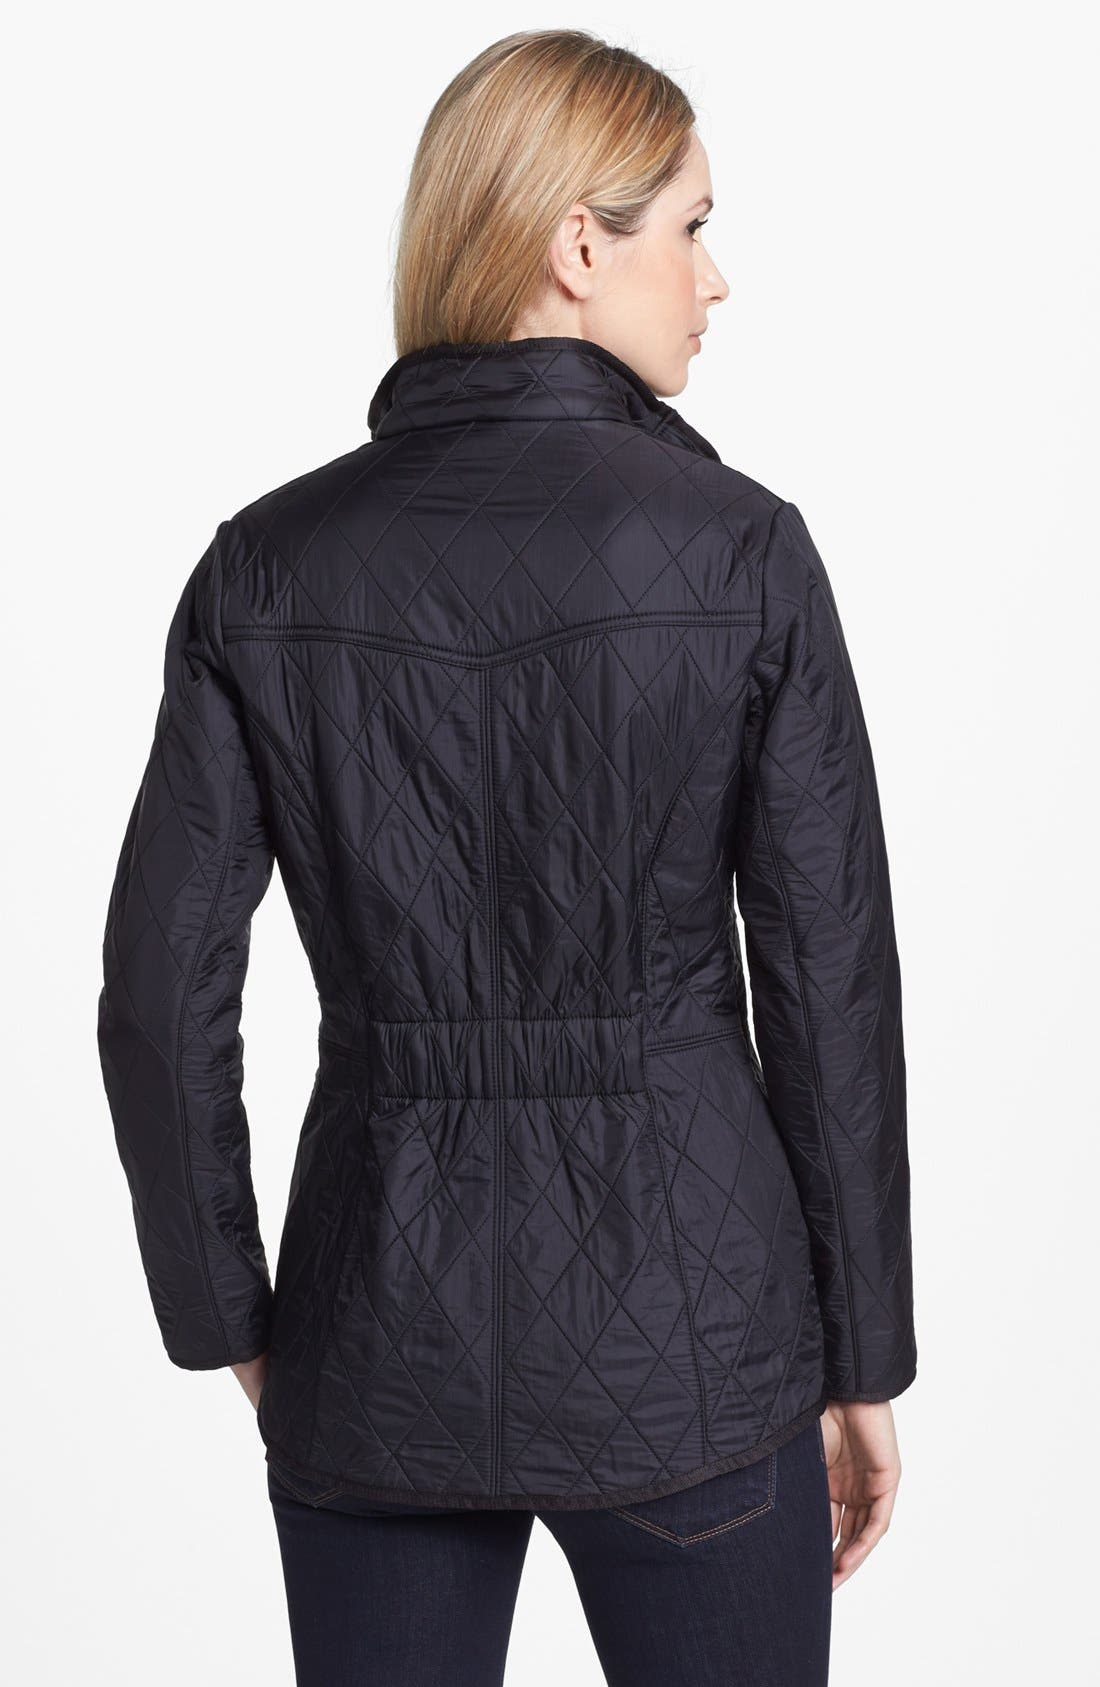 'Cavalry' Quilted Jacket,                             Alternate thumbnail 2, color,                             Black